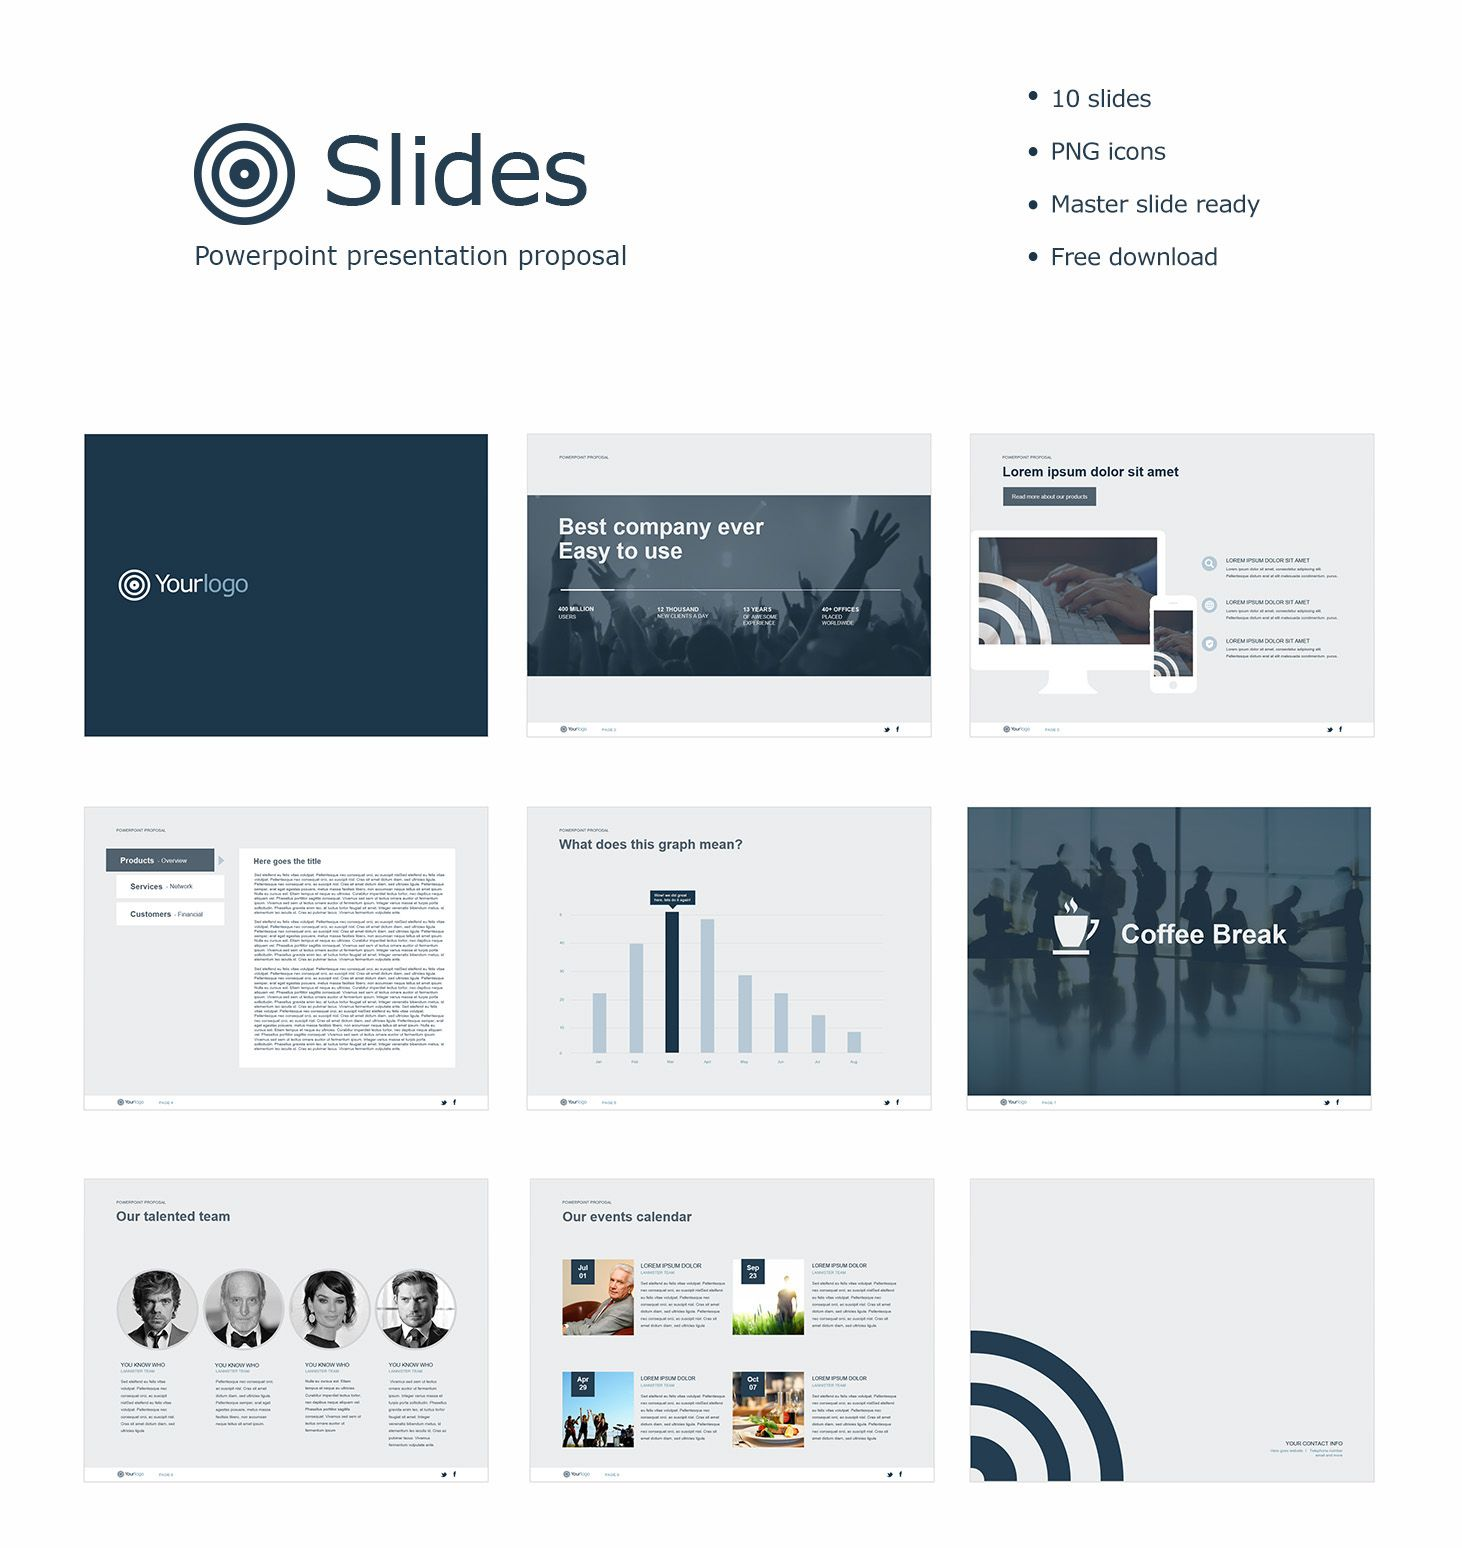 Powerpoint template for company presentation by rita marantos powerpoint template for company presentation by rita marantos maxwellsz